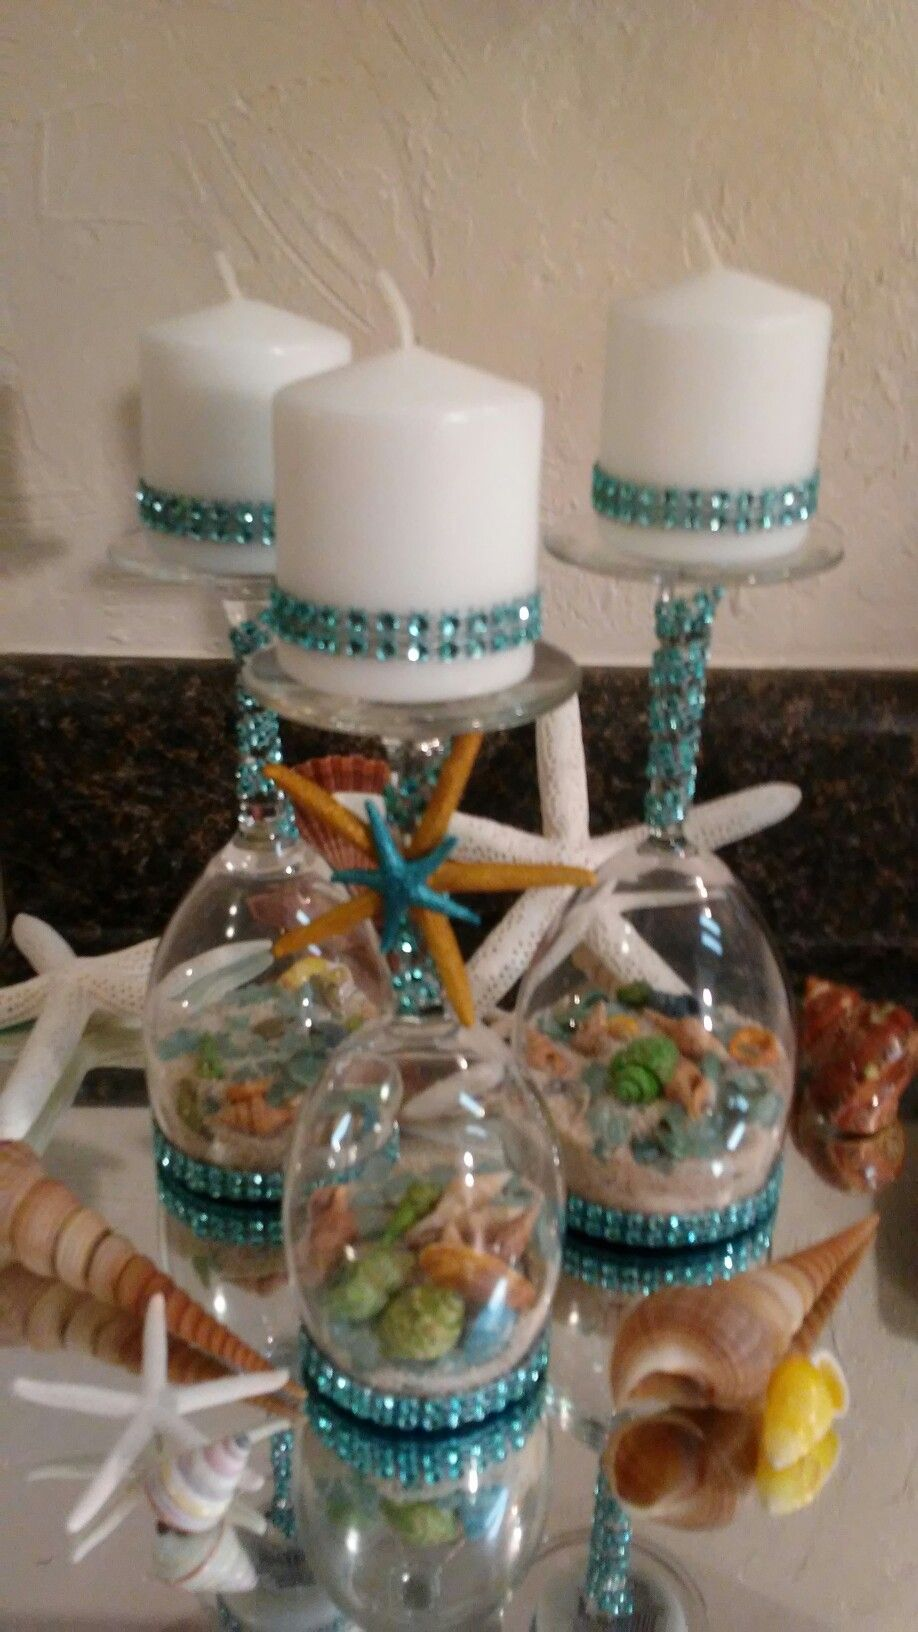 Upside Down Wine Glass Candle Holders Lots Of Shells Lots Of Fun To Make Wine Glass Crafts Wine Glass Candle Holder Wine Glass Candle